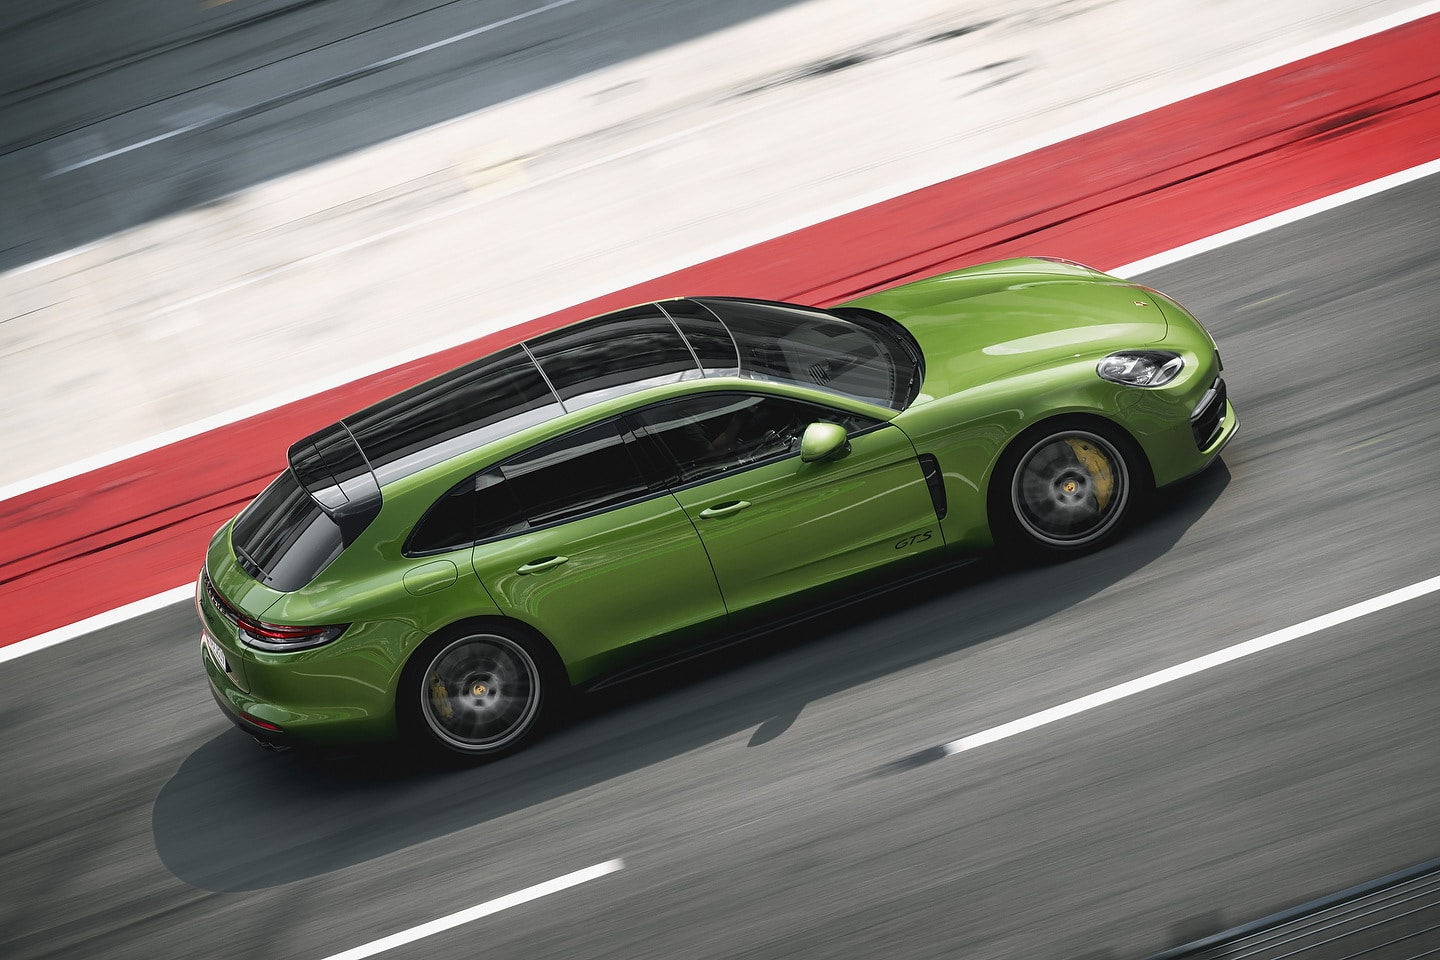 2020 Porsche Panamera GTS and GTS Sport Turismo On Their Way - Motor Illustrated